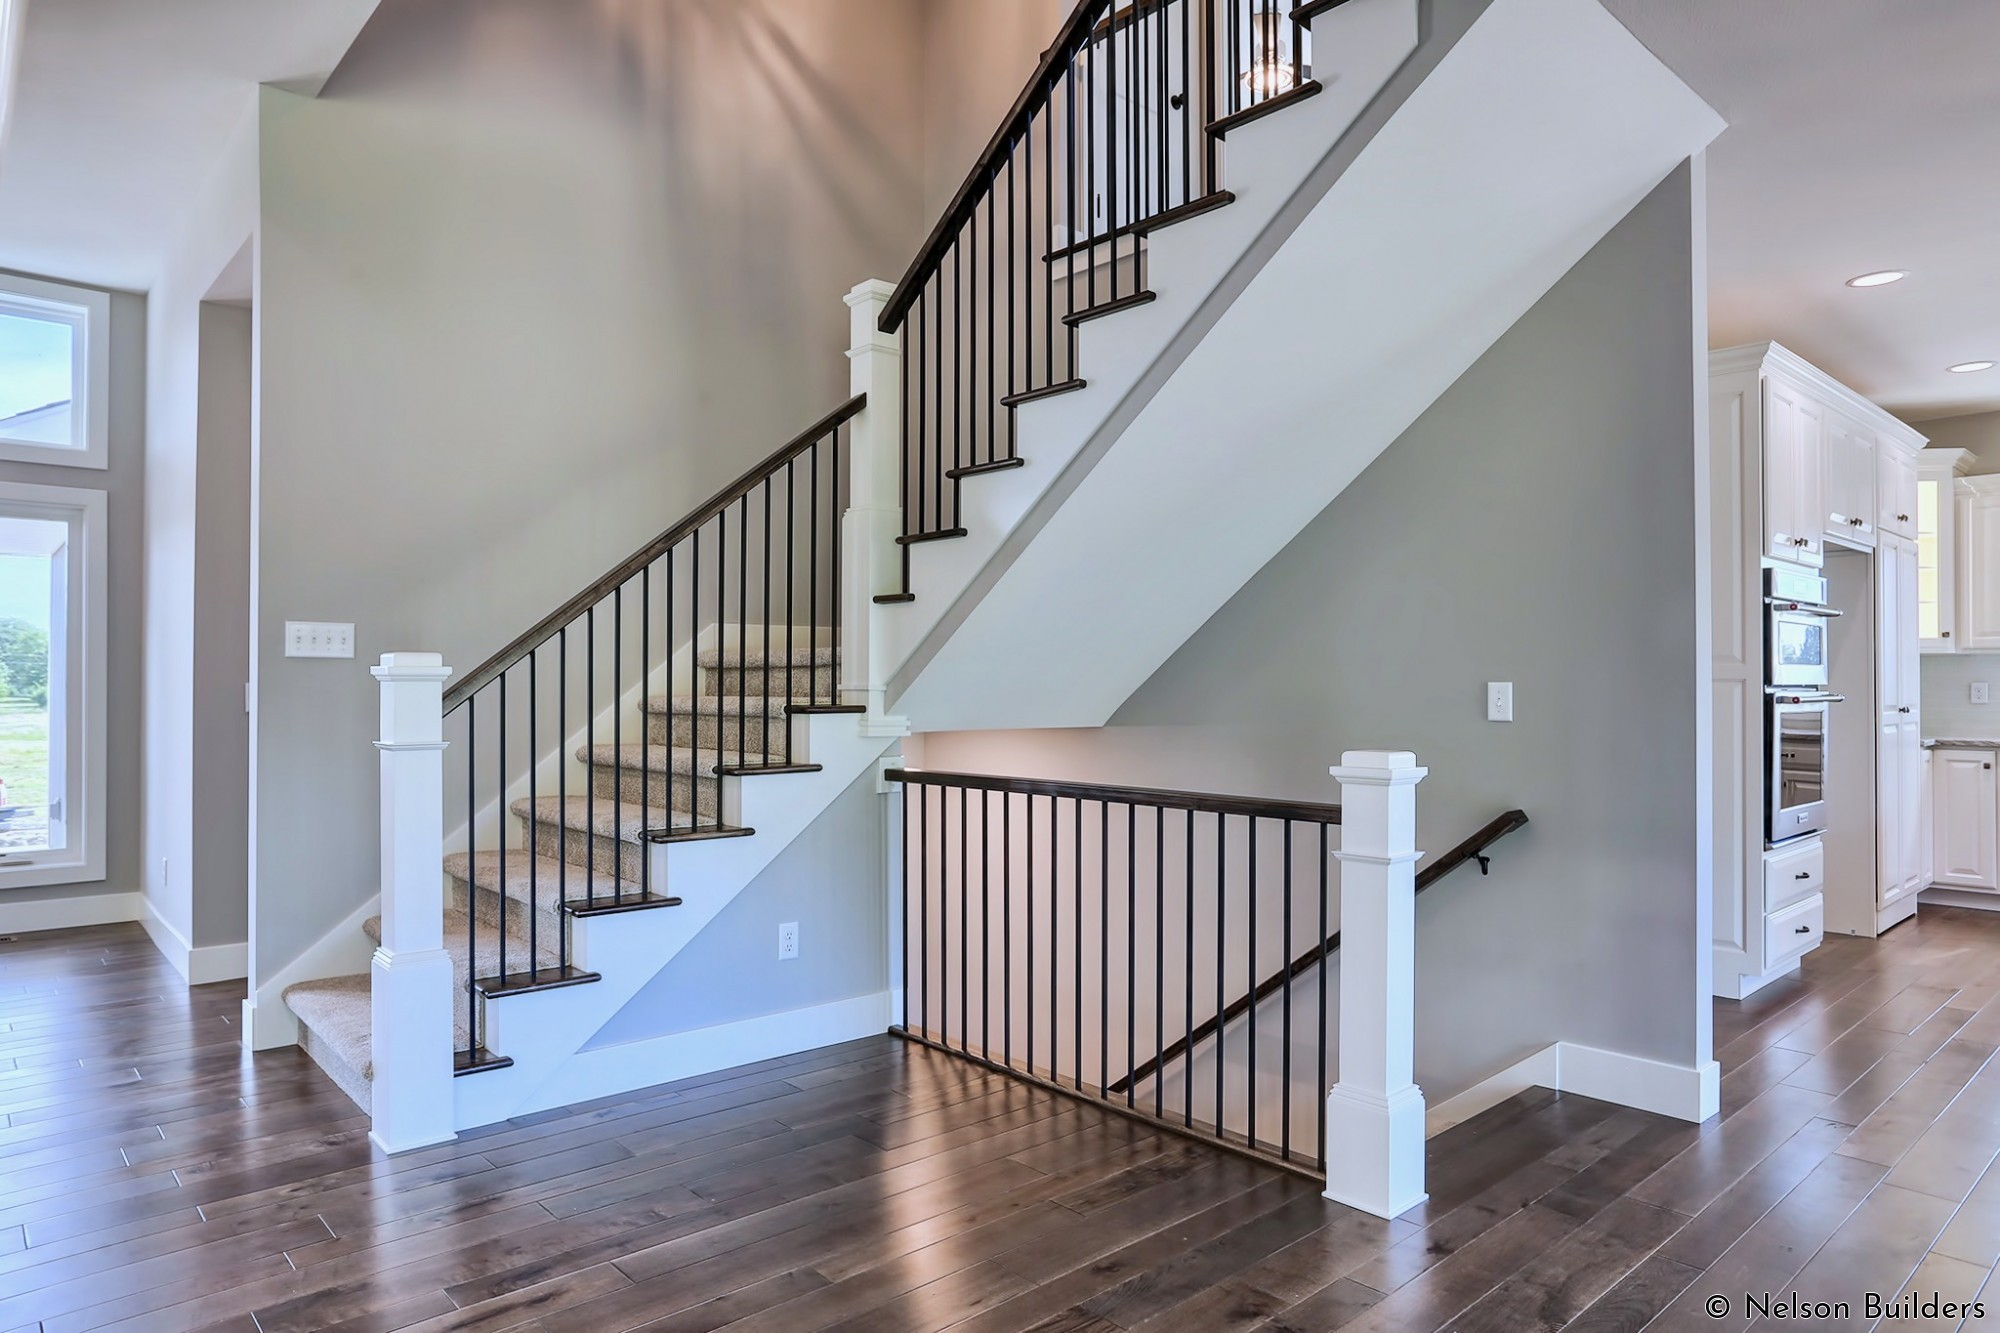 The stacked stairways are a simple statement with the black iron balusters and exposed wood treads.